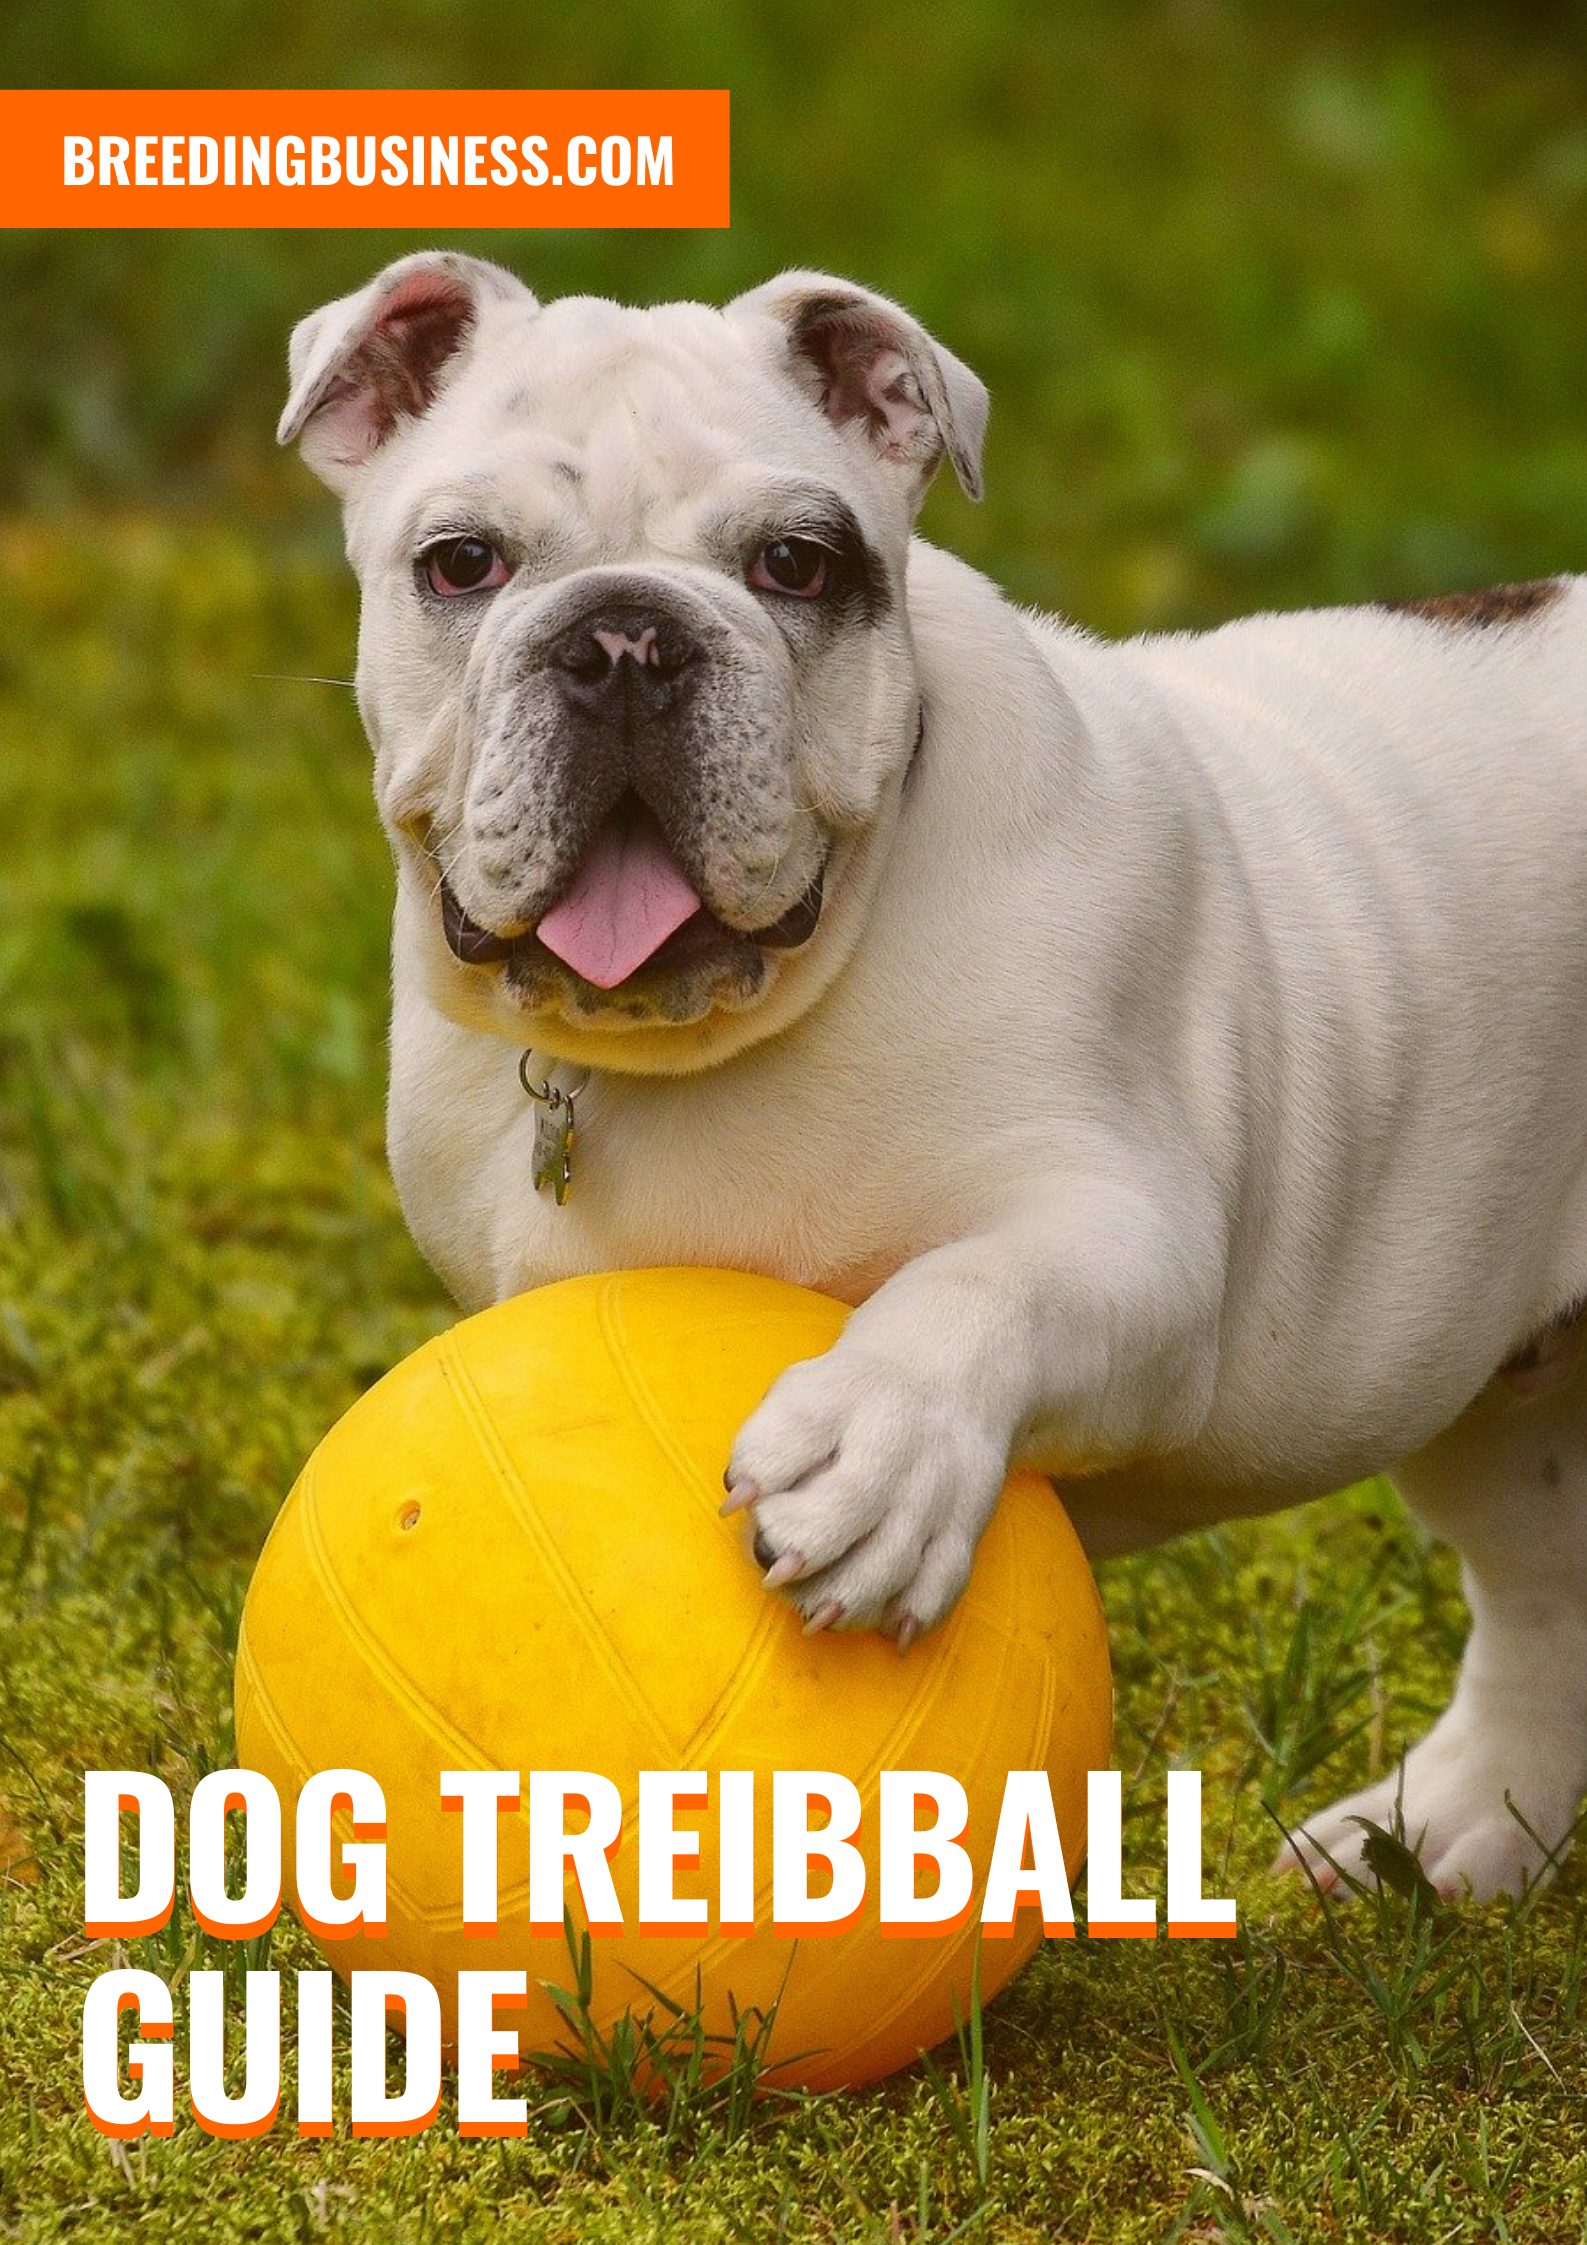 Dog Treibball Guide Rules Training Equipment Resources In 2020 Dogs Pets Dog Supplies